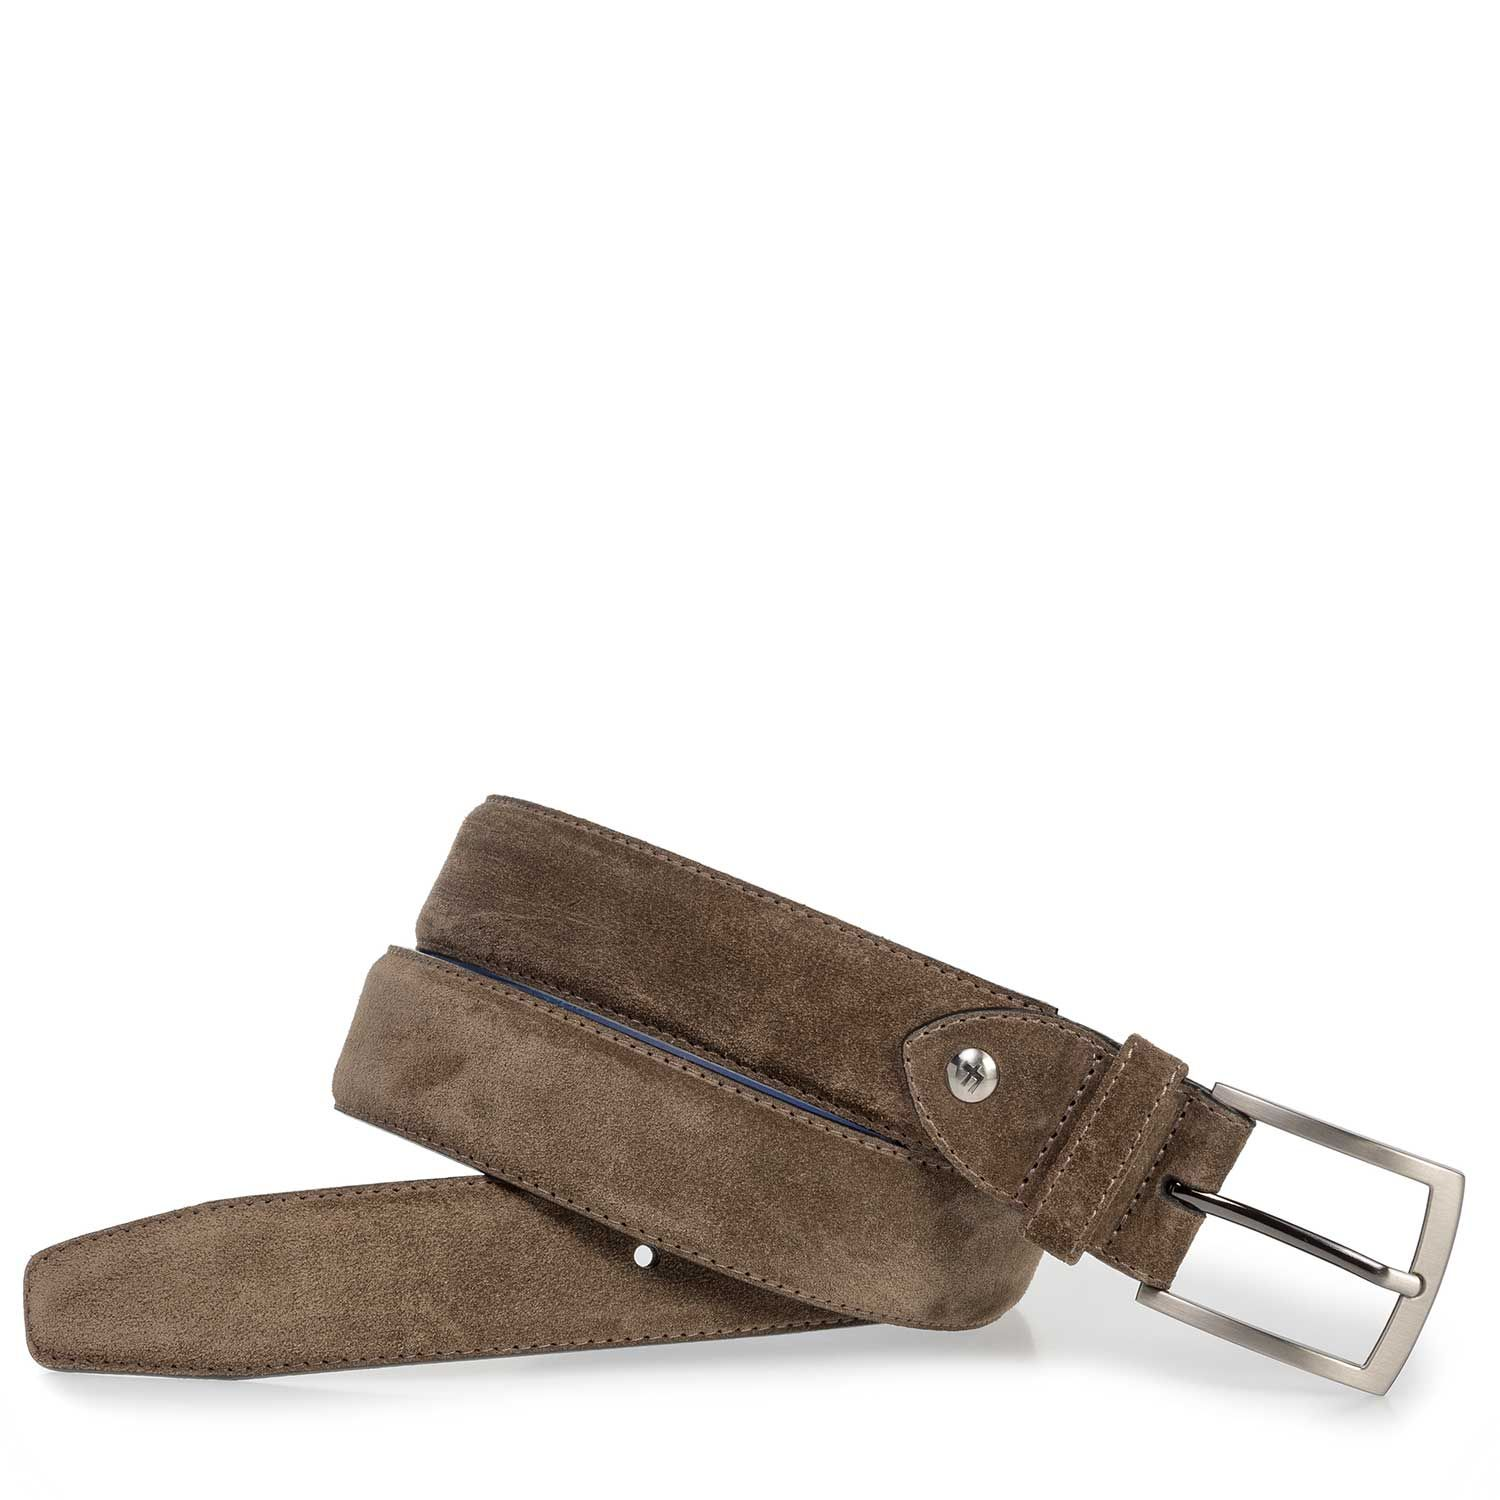 75201/45 - Dark taupe-coloured suede leather belt